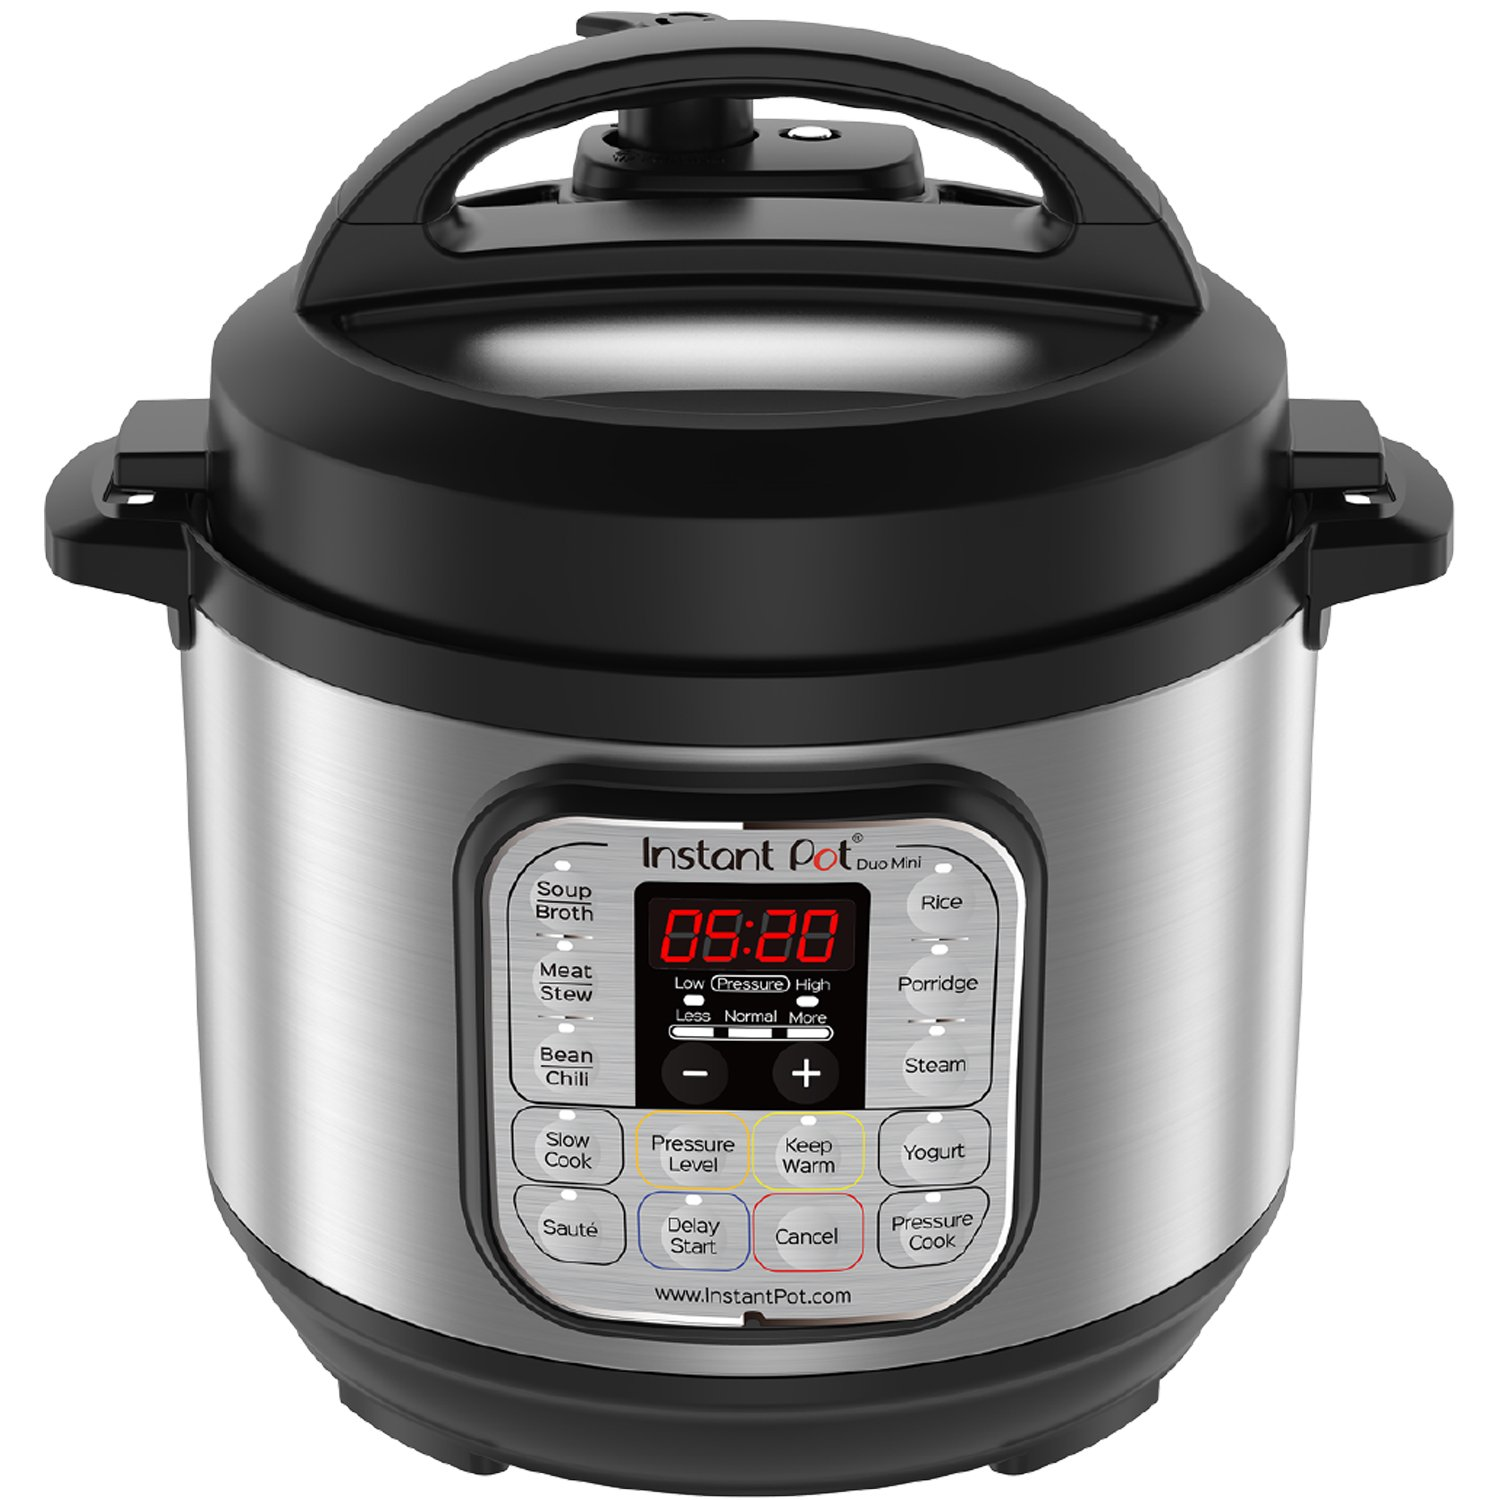 $79.99 (was $109.99) Instant Pot Duo Mini 3qt 7-in-1 Multi-Use Programmable Pressure Cooker, Rice Cooker 12 Cups Rice (Cooked)